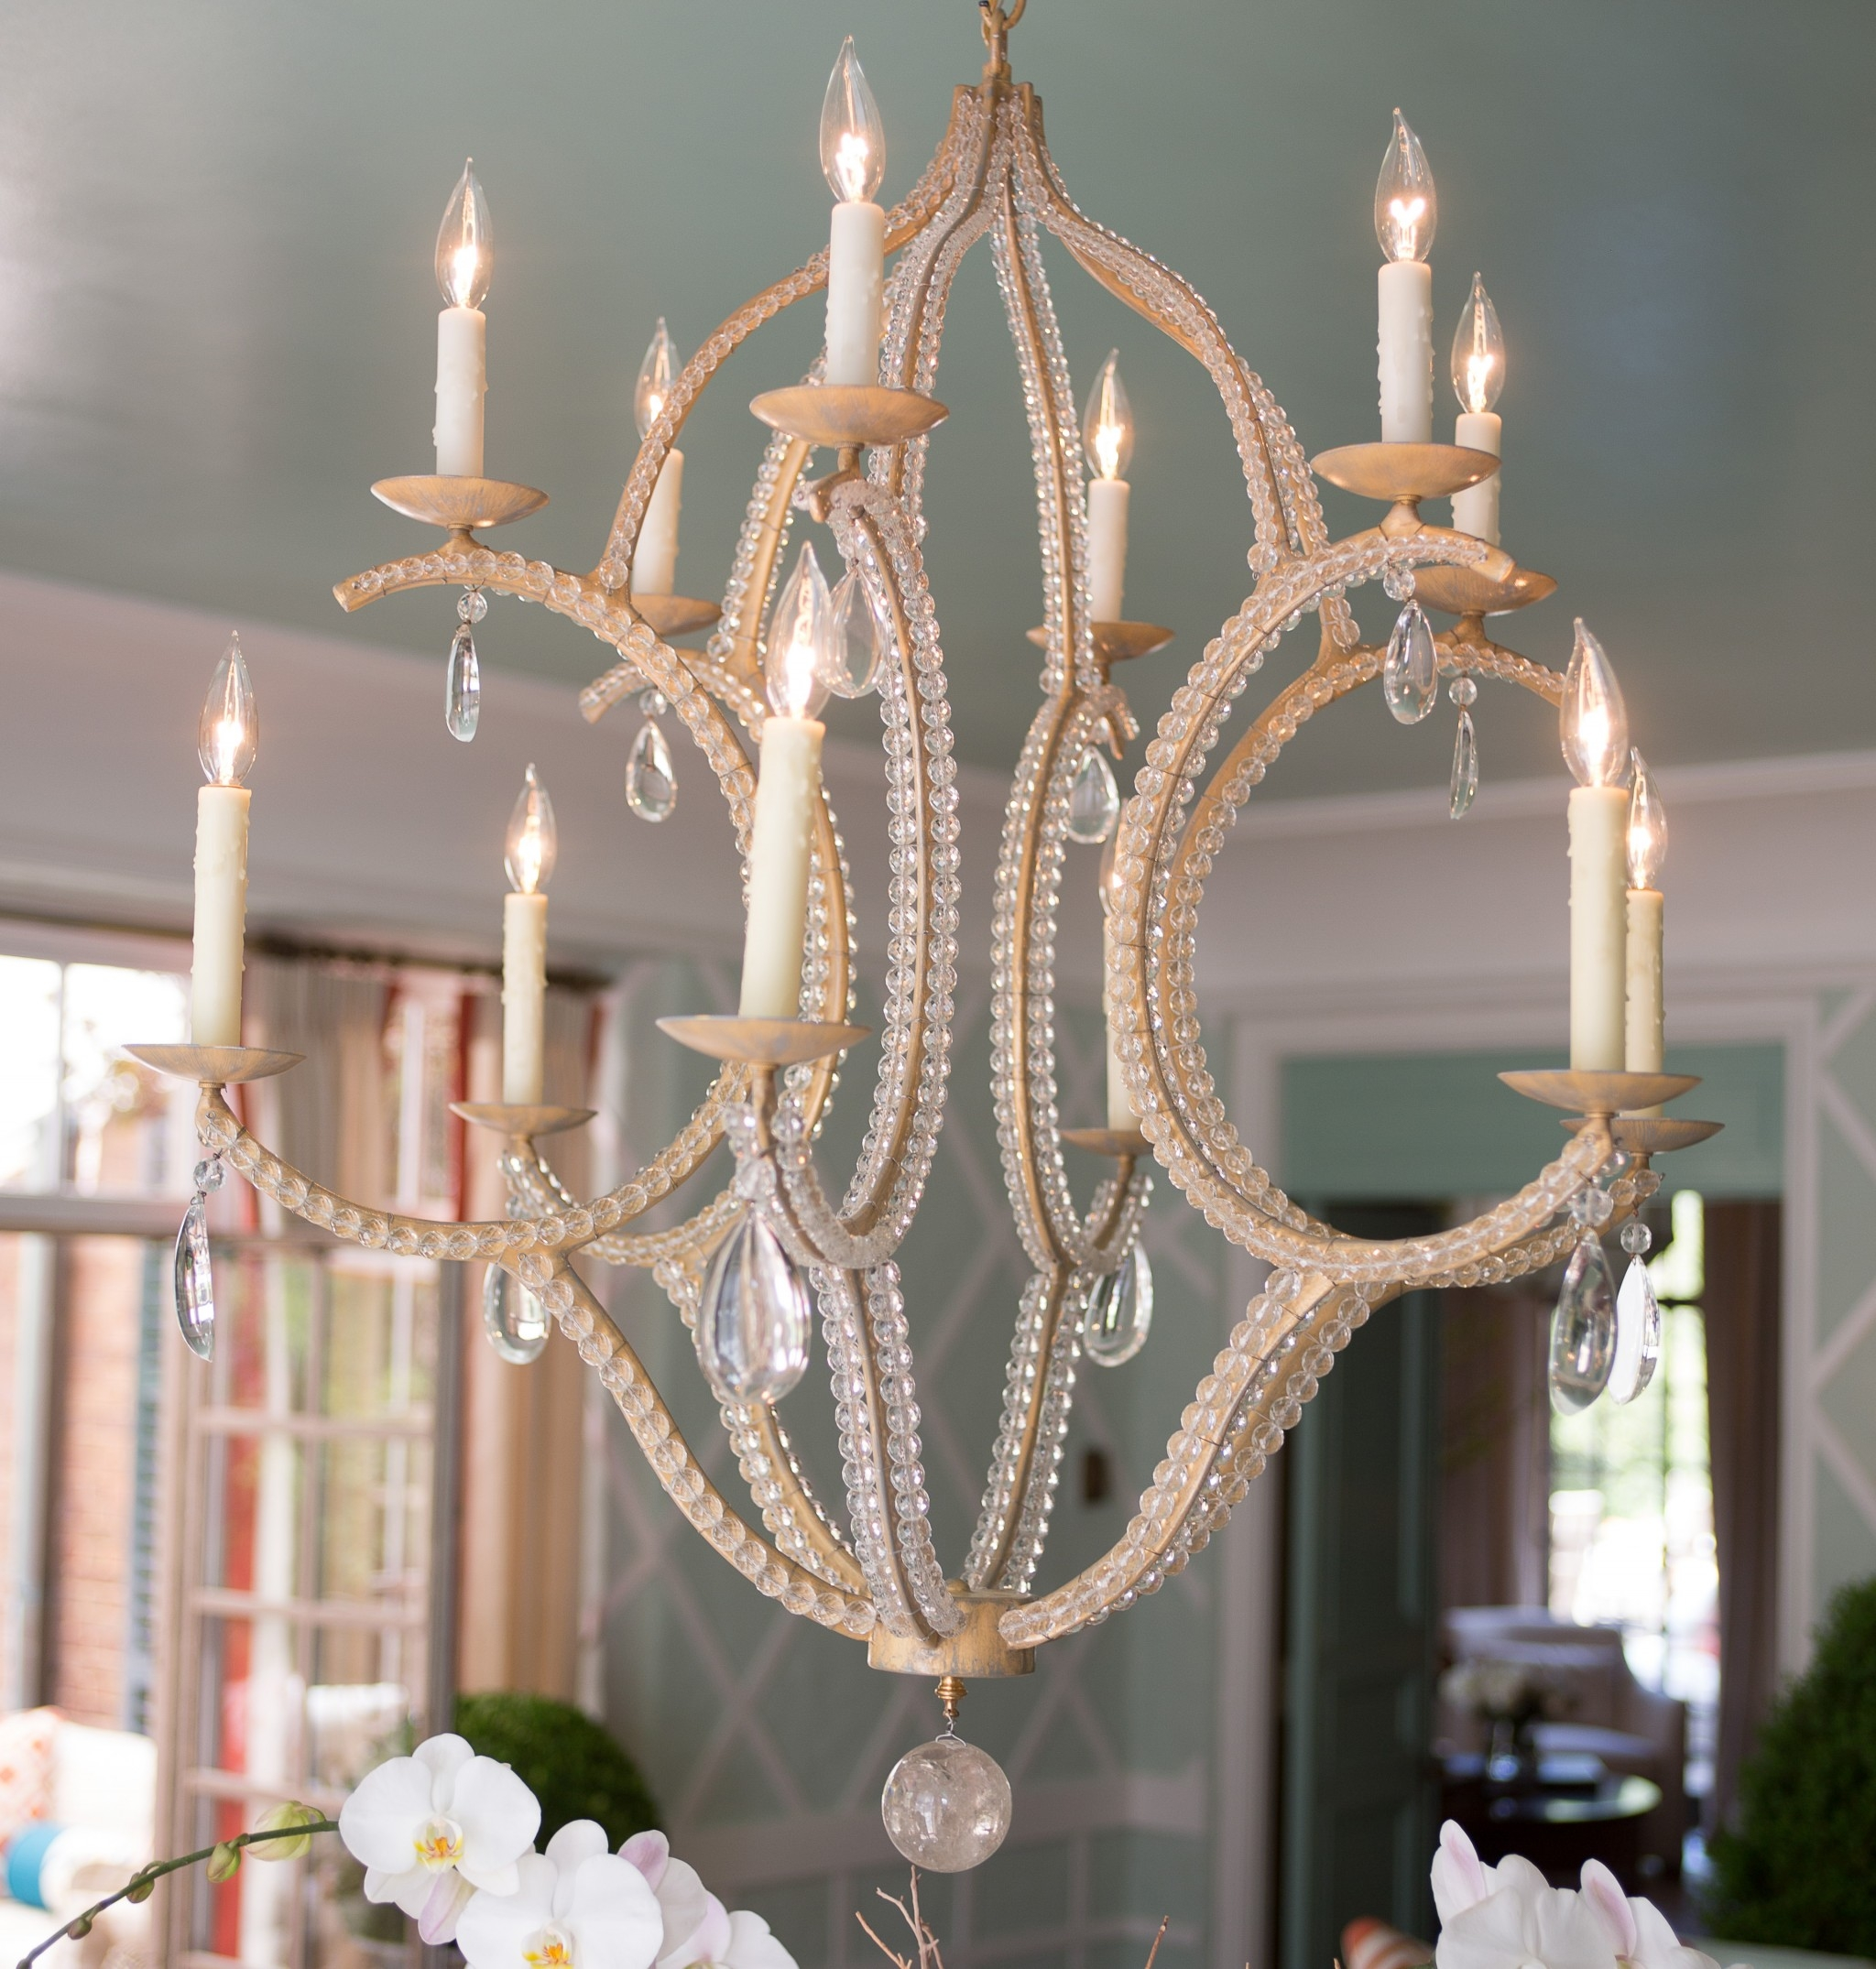 25 best collection of chinoiserie chandeliers chandelier ideas florian chandelier niermann weeks throughout chinoiserie chandeliers image 11 of 25 aloadofball